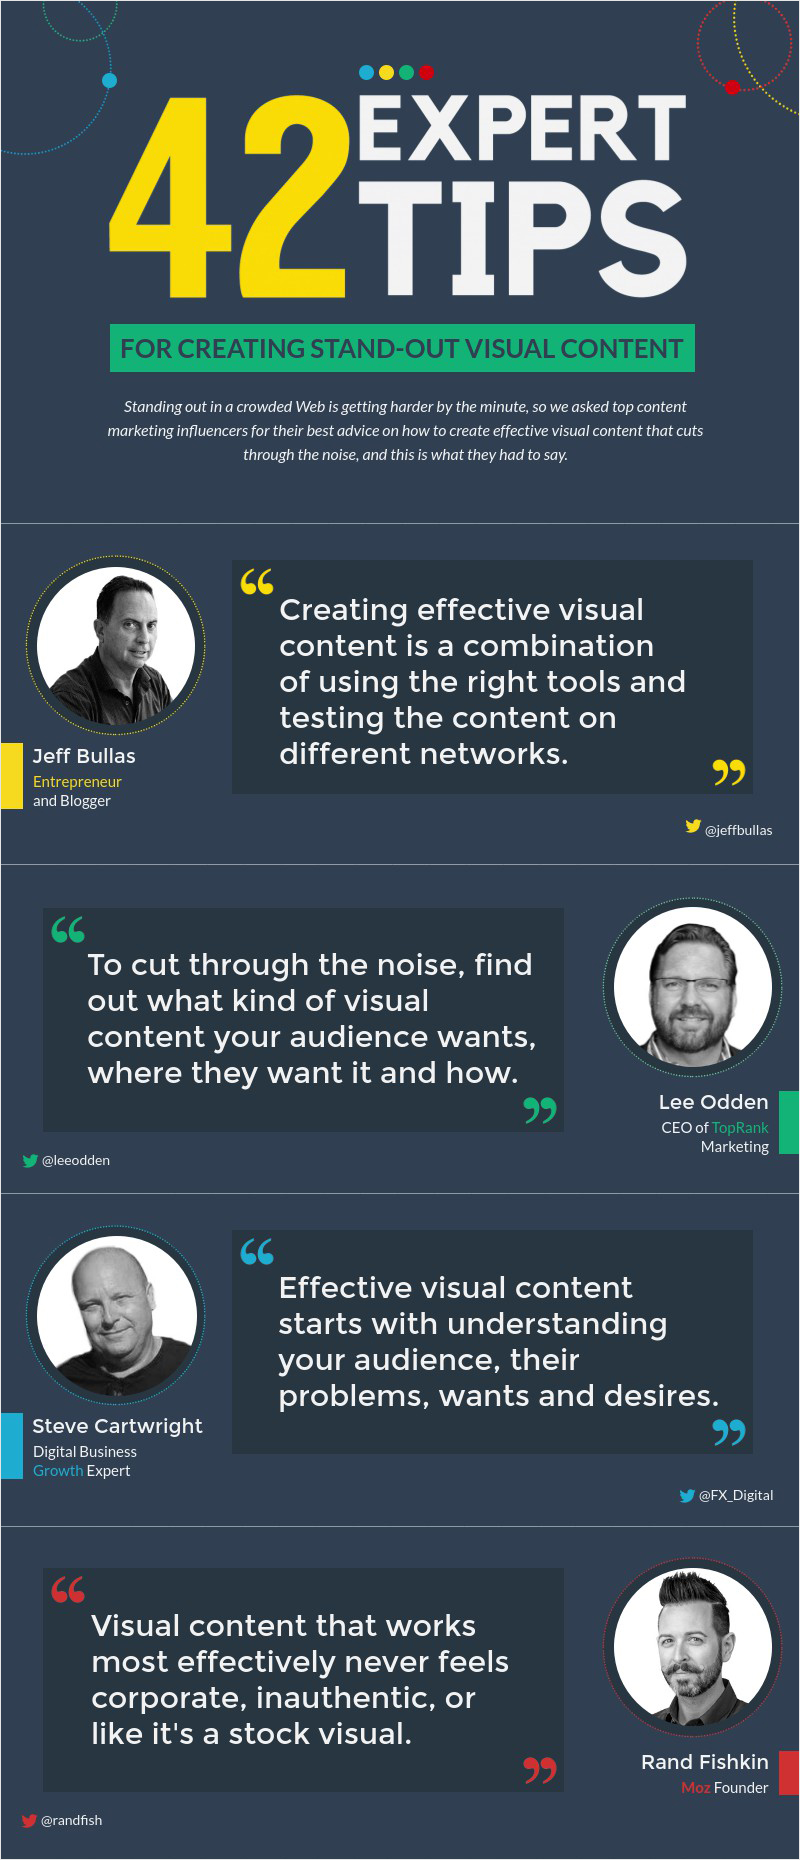 40-Infographic-Ideas-to-Jumpstart-your-Creativity-Marketers-42-Visual-Content-Expert-Tips